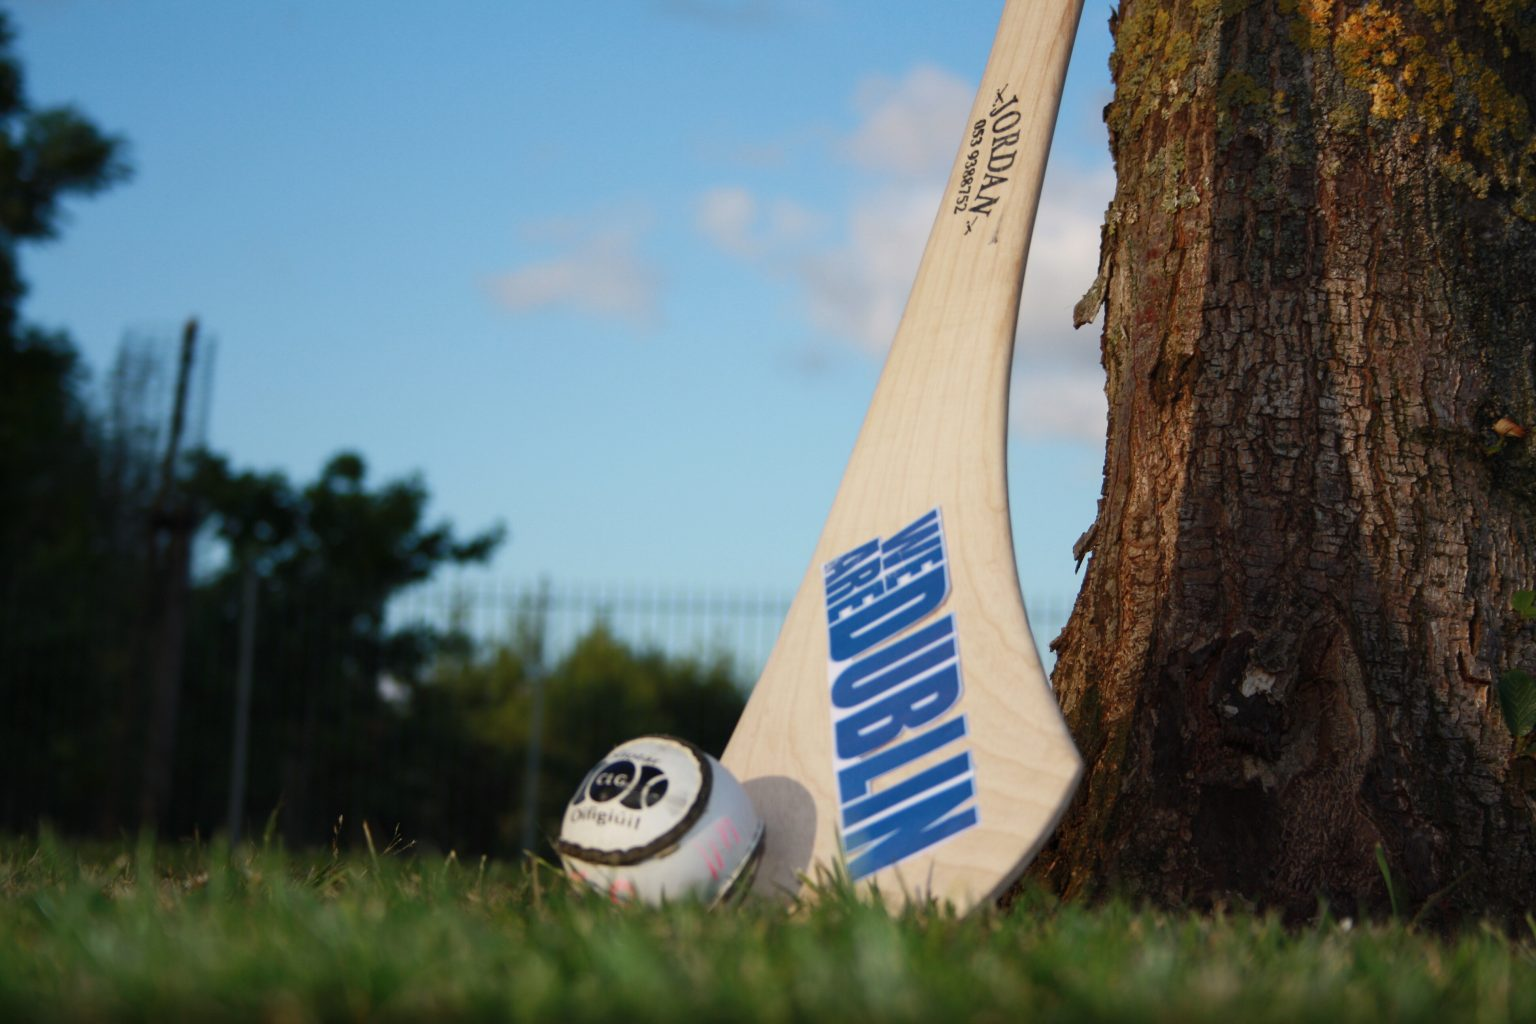 A hurl lies against a tree trunk with a sliotars in front of it to promote the Dublin's U16 Camogie Championship double header against Kilkenny